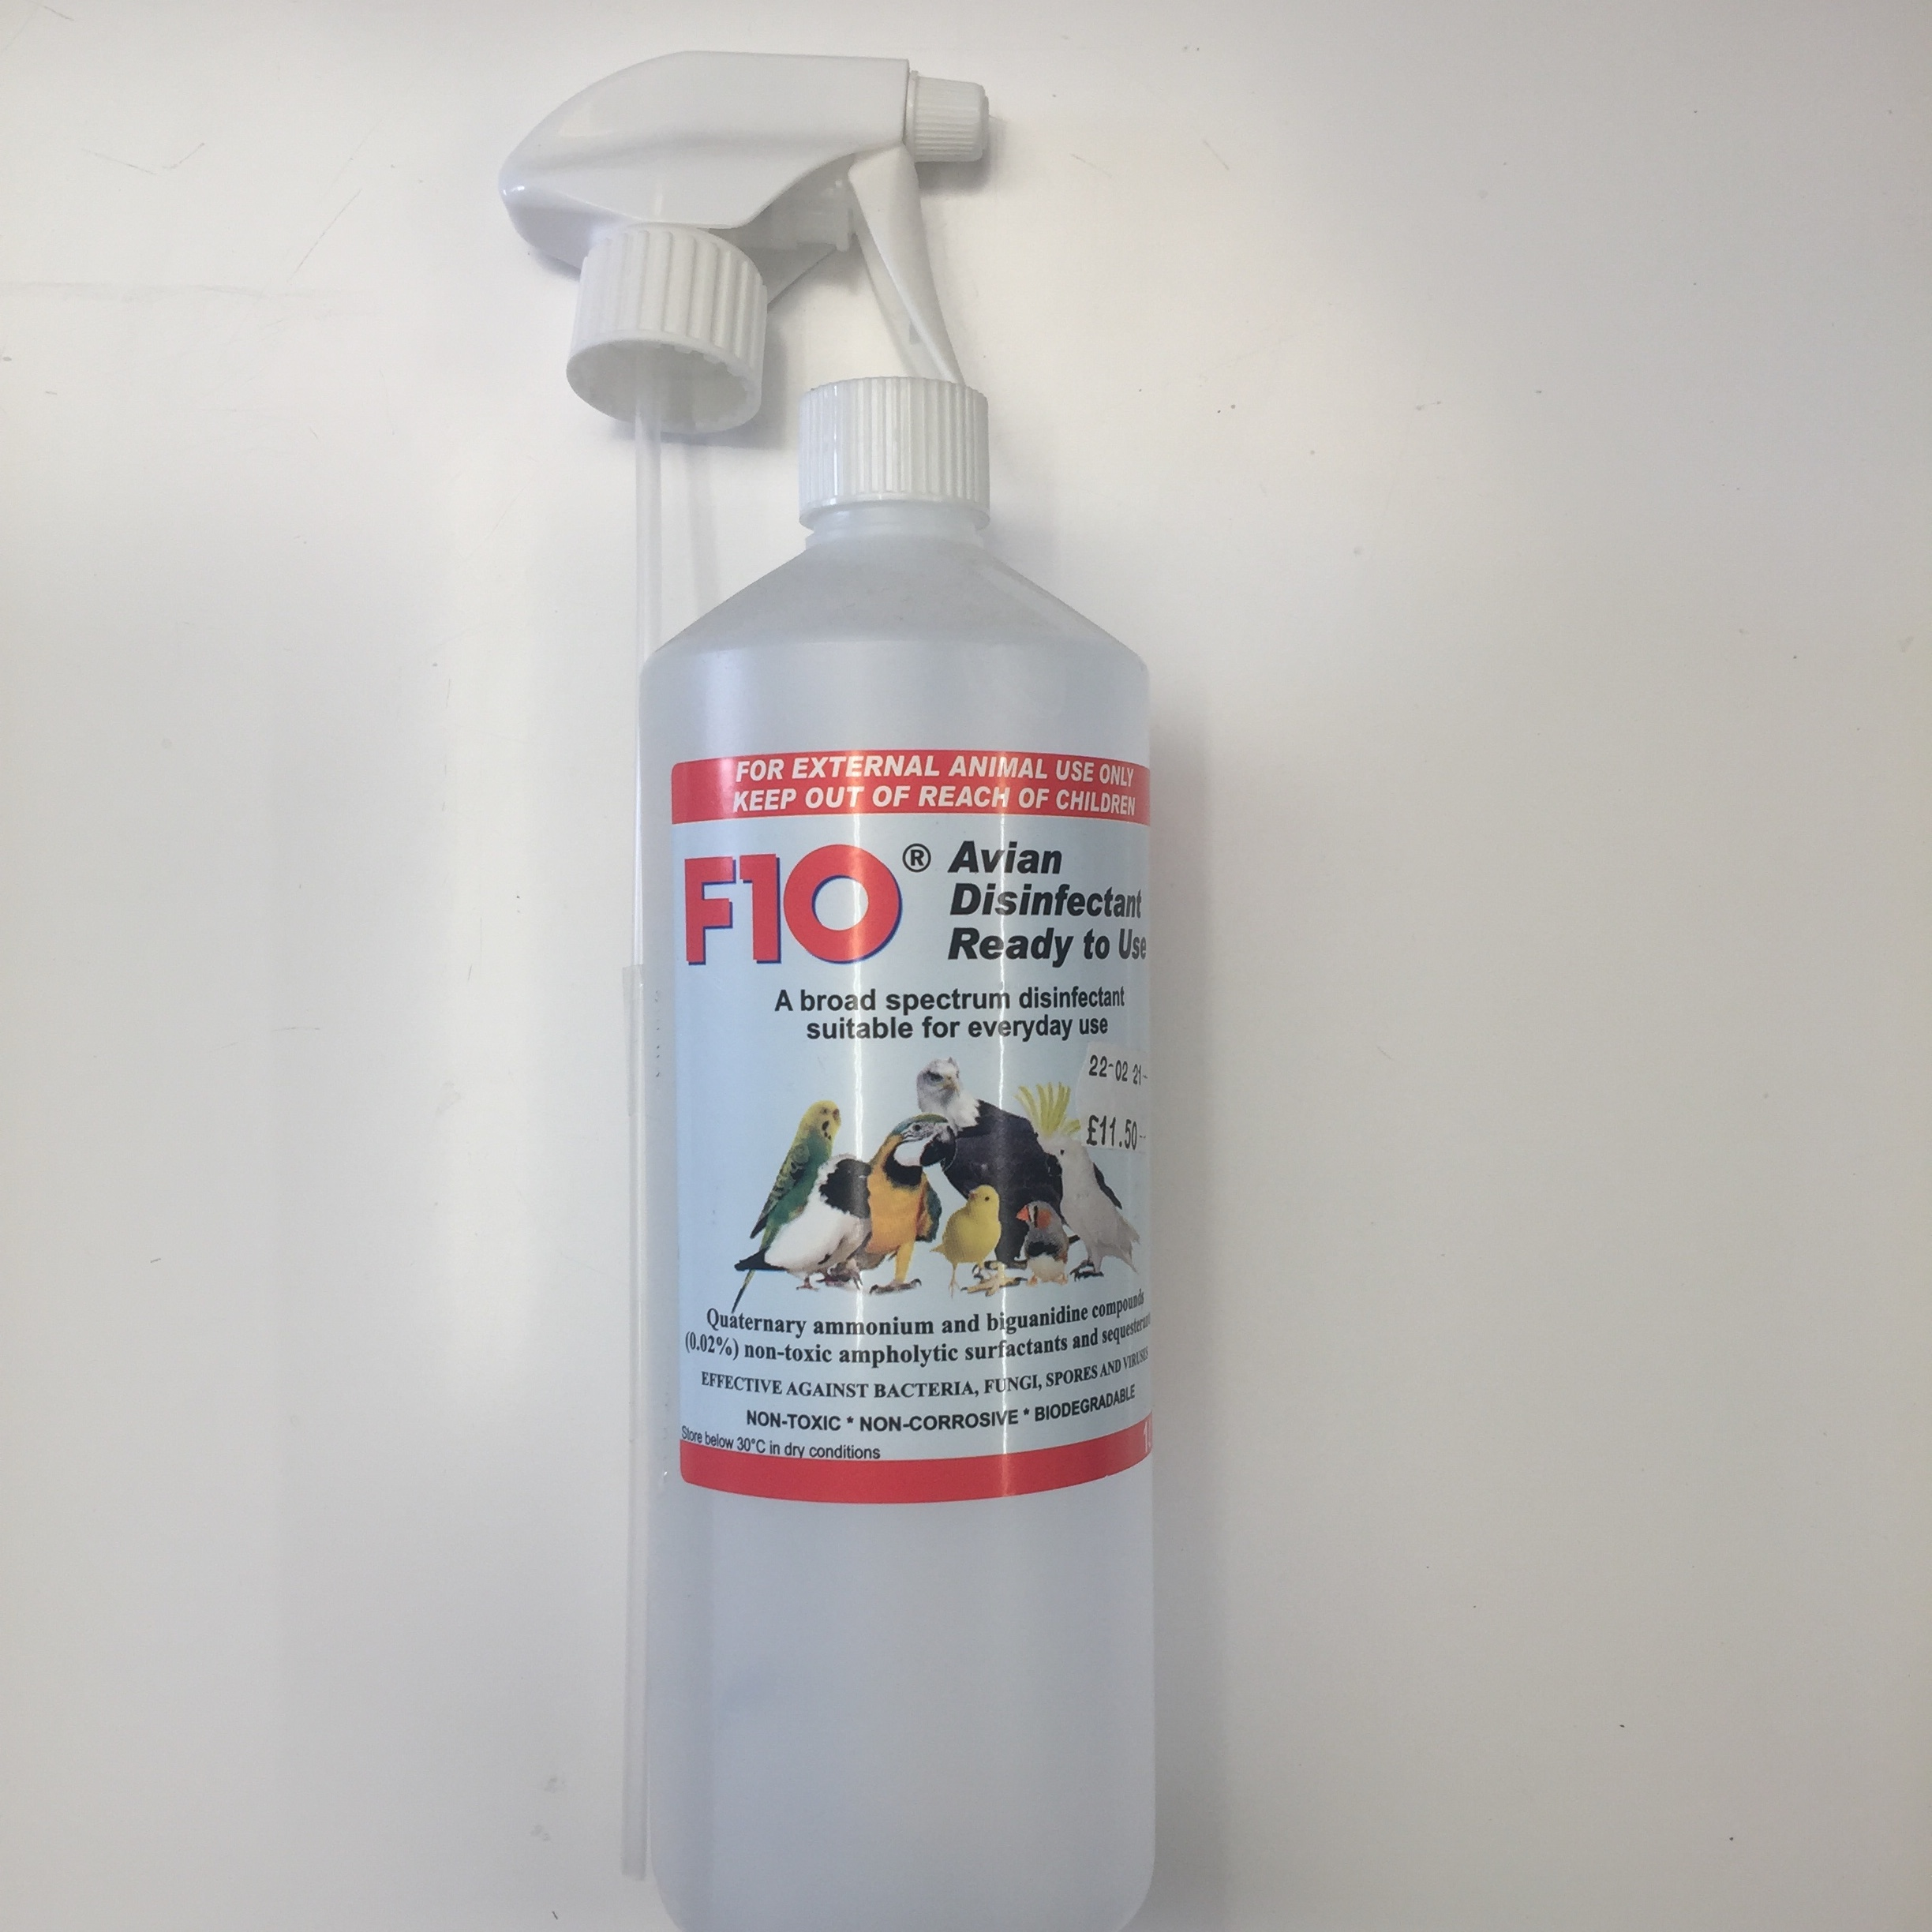 F10 Avian Disinfectant Ready To Use